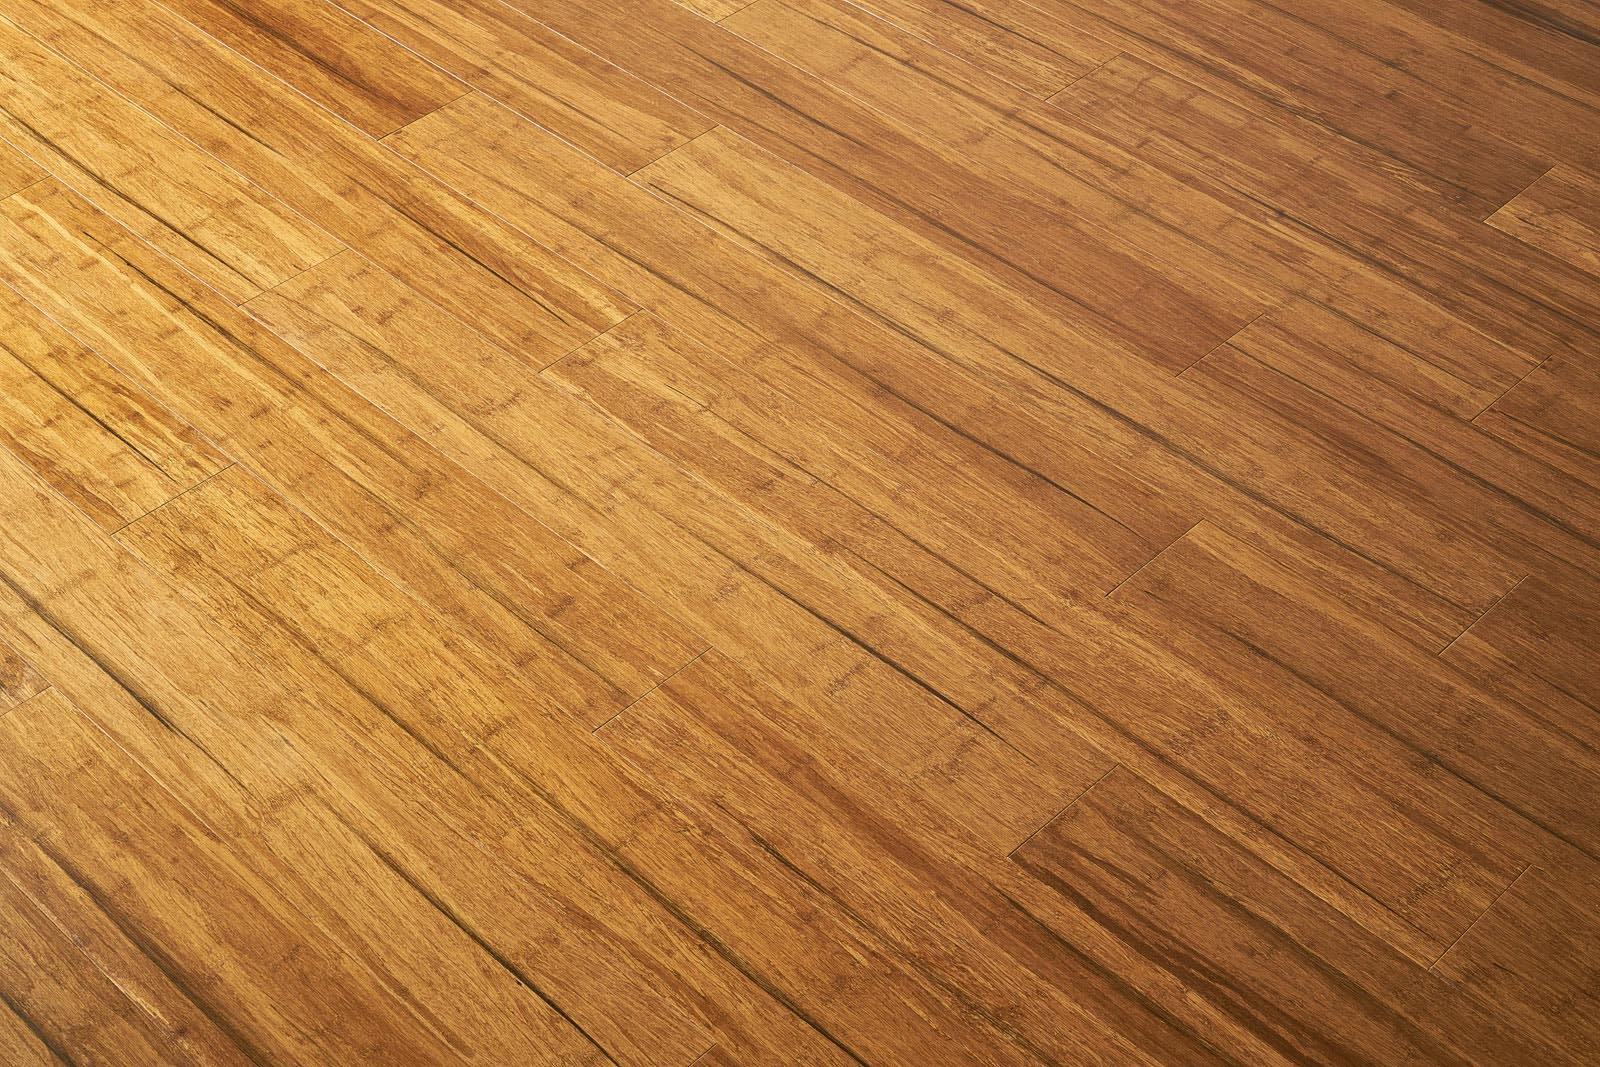 0 00 Pcs Stained Strand Woven Bamboo Flooring Black Painted Carbonized